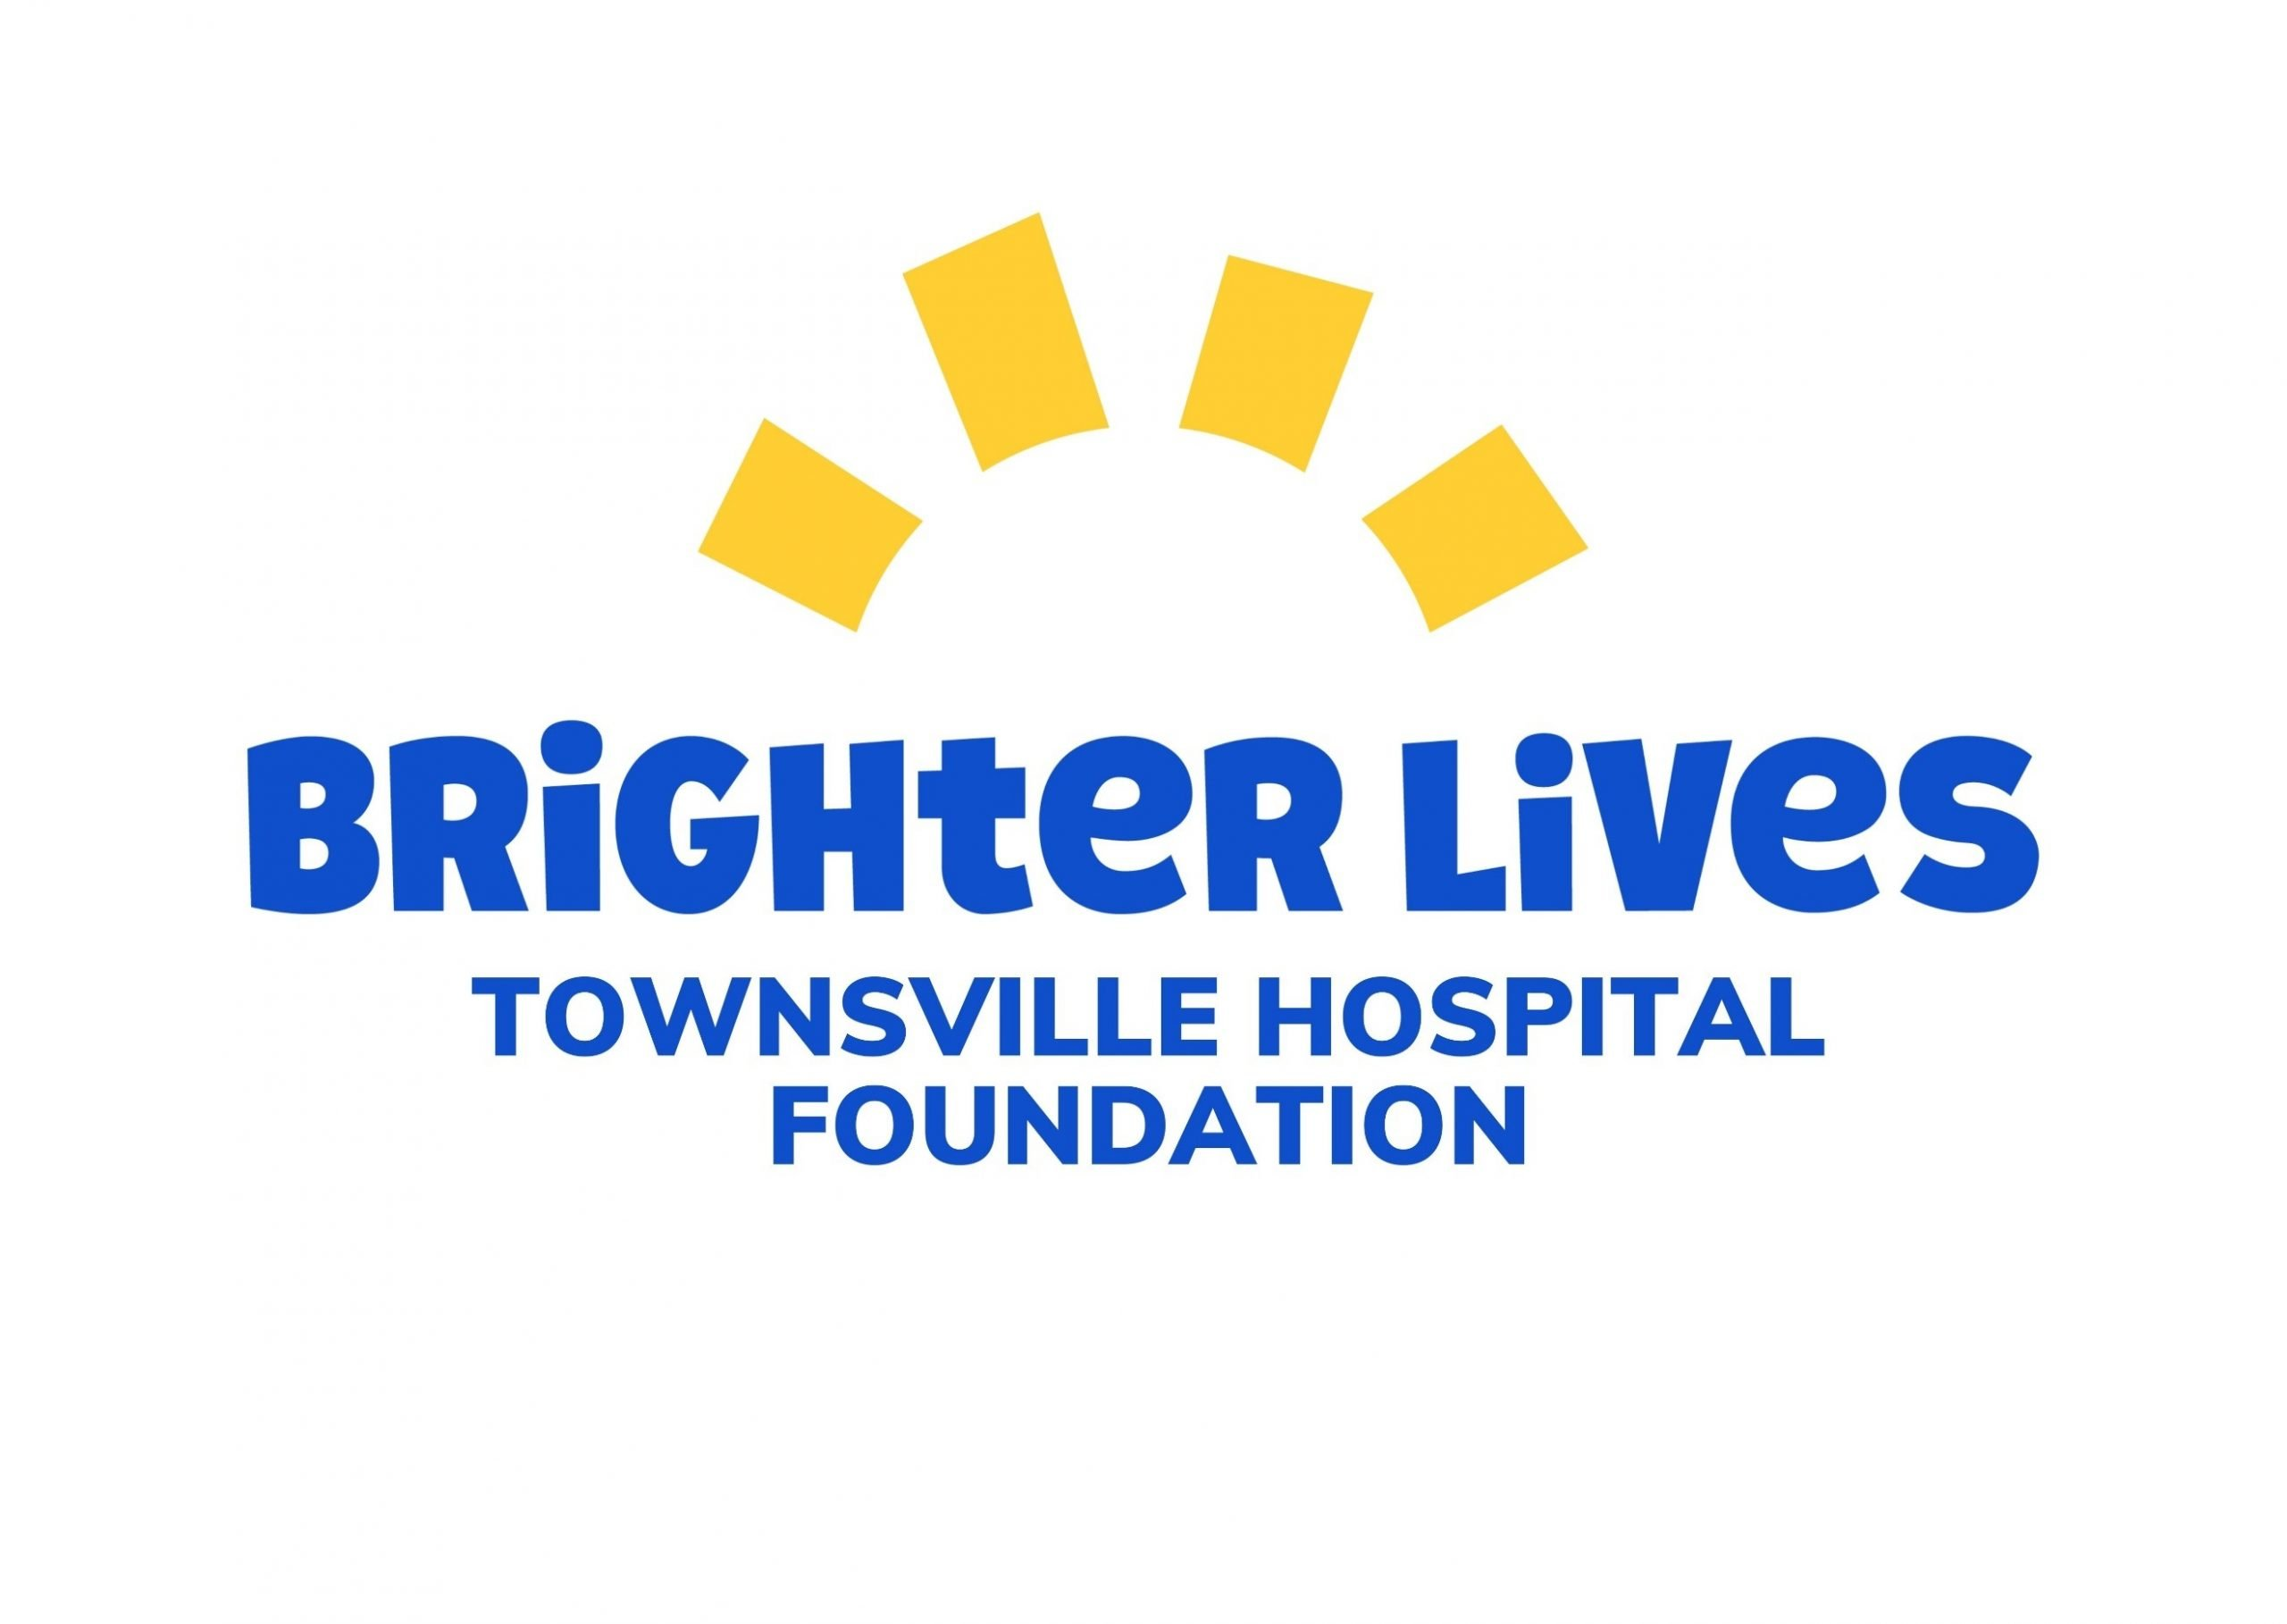 Brighter Lives (Townsville Hospital Foundation)